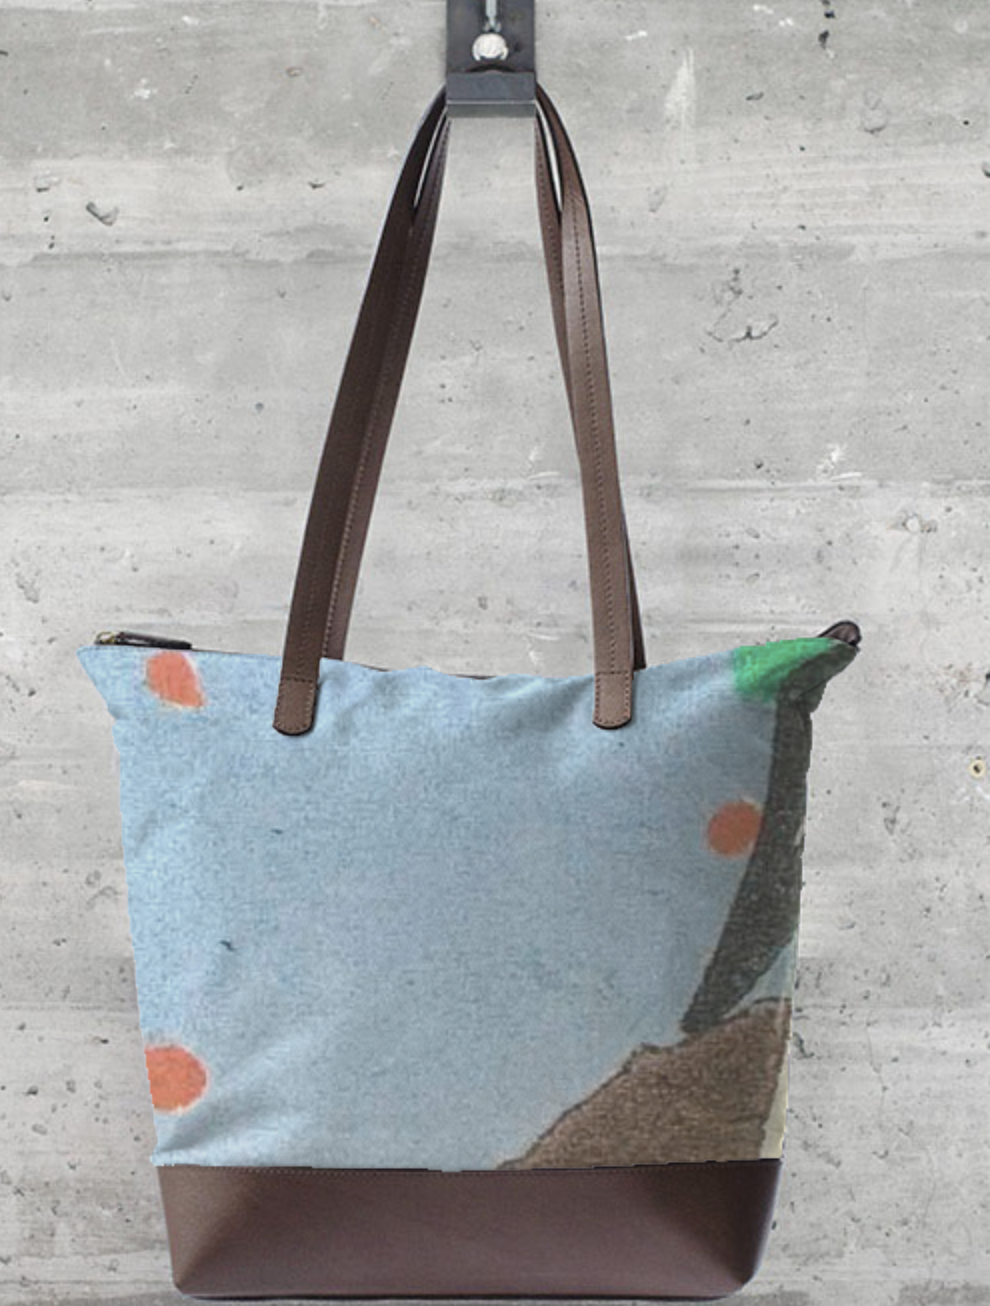 bag-WilliamHeydt-VidaCollection2018-1.png